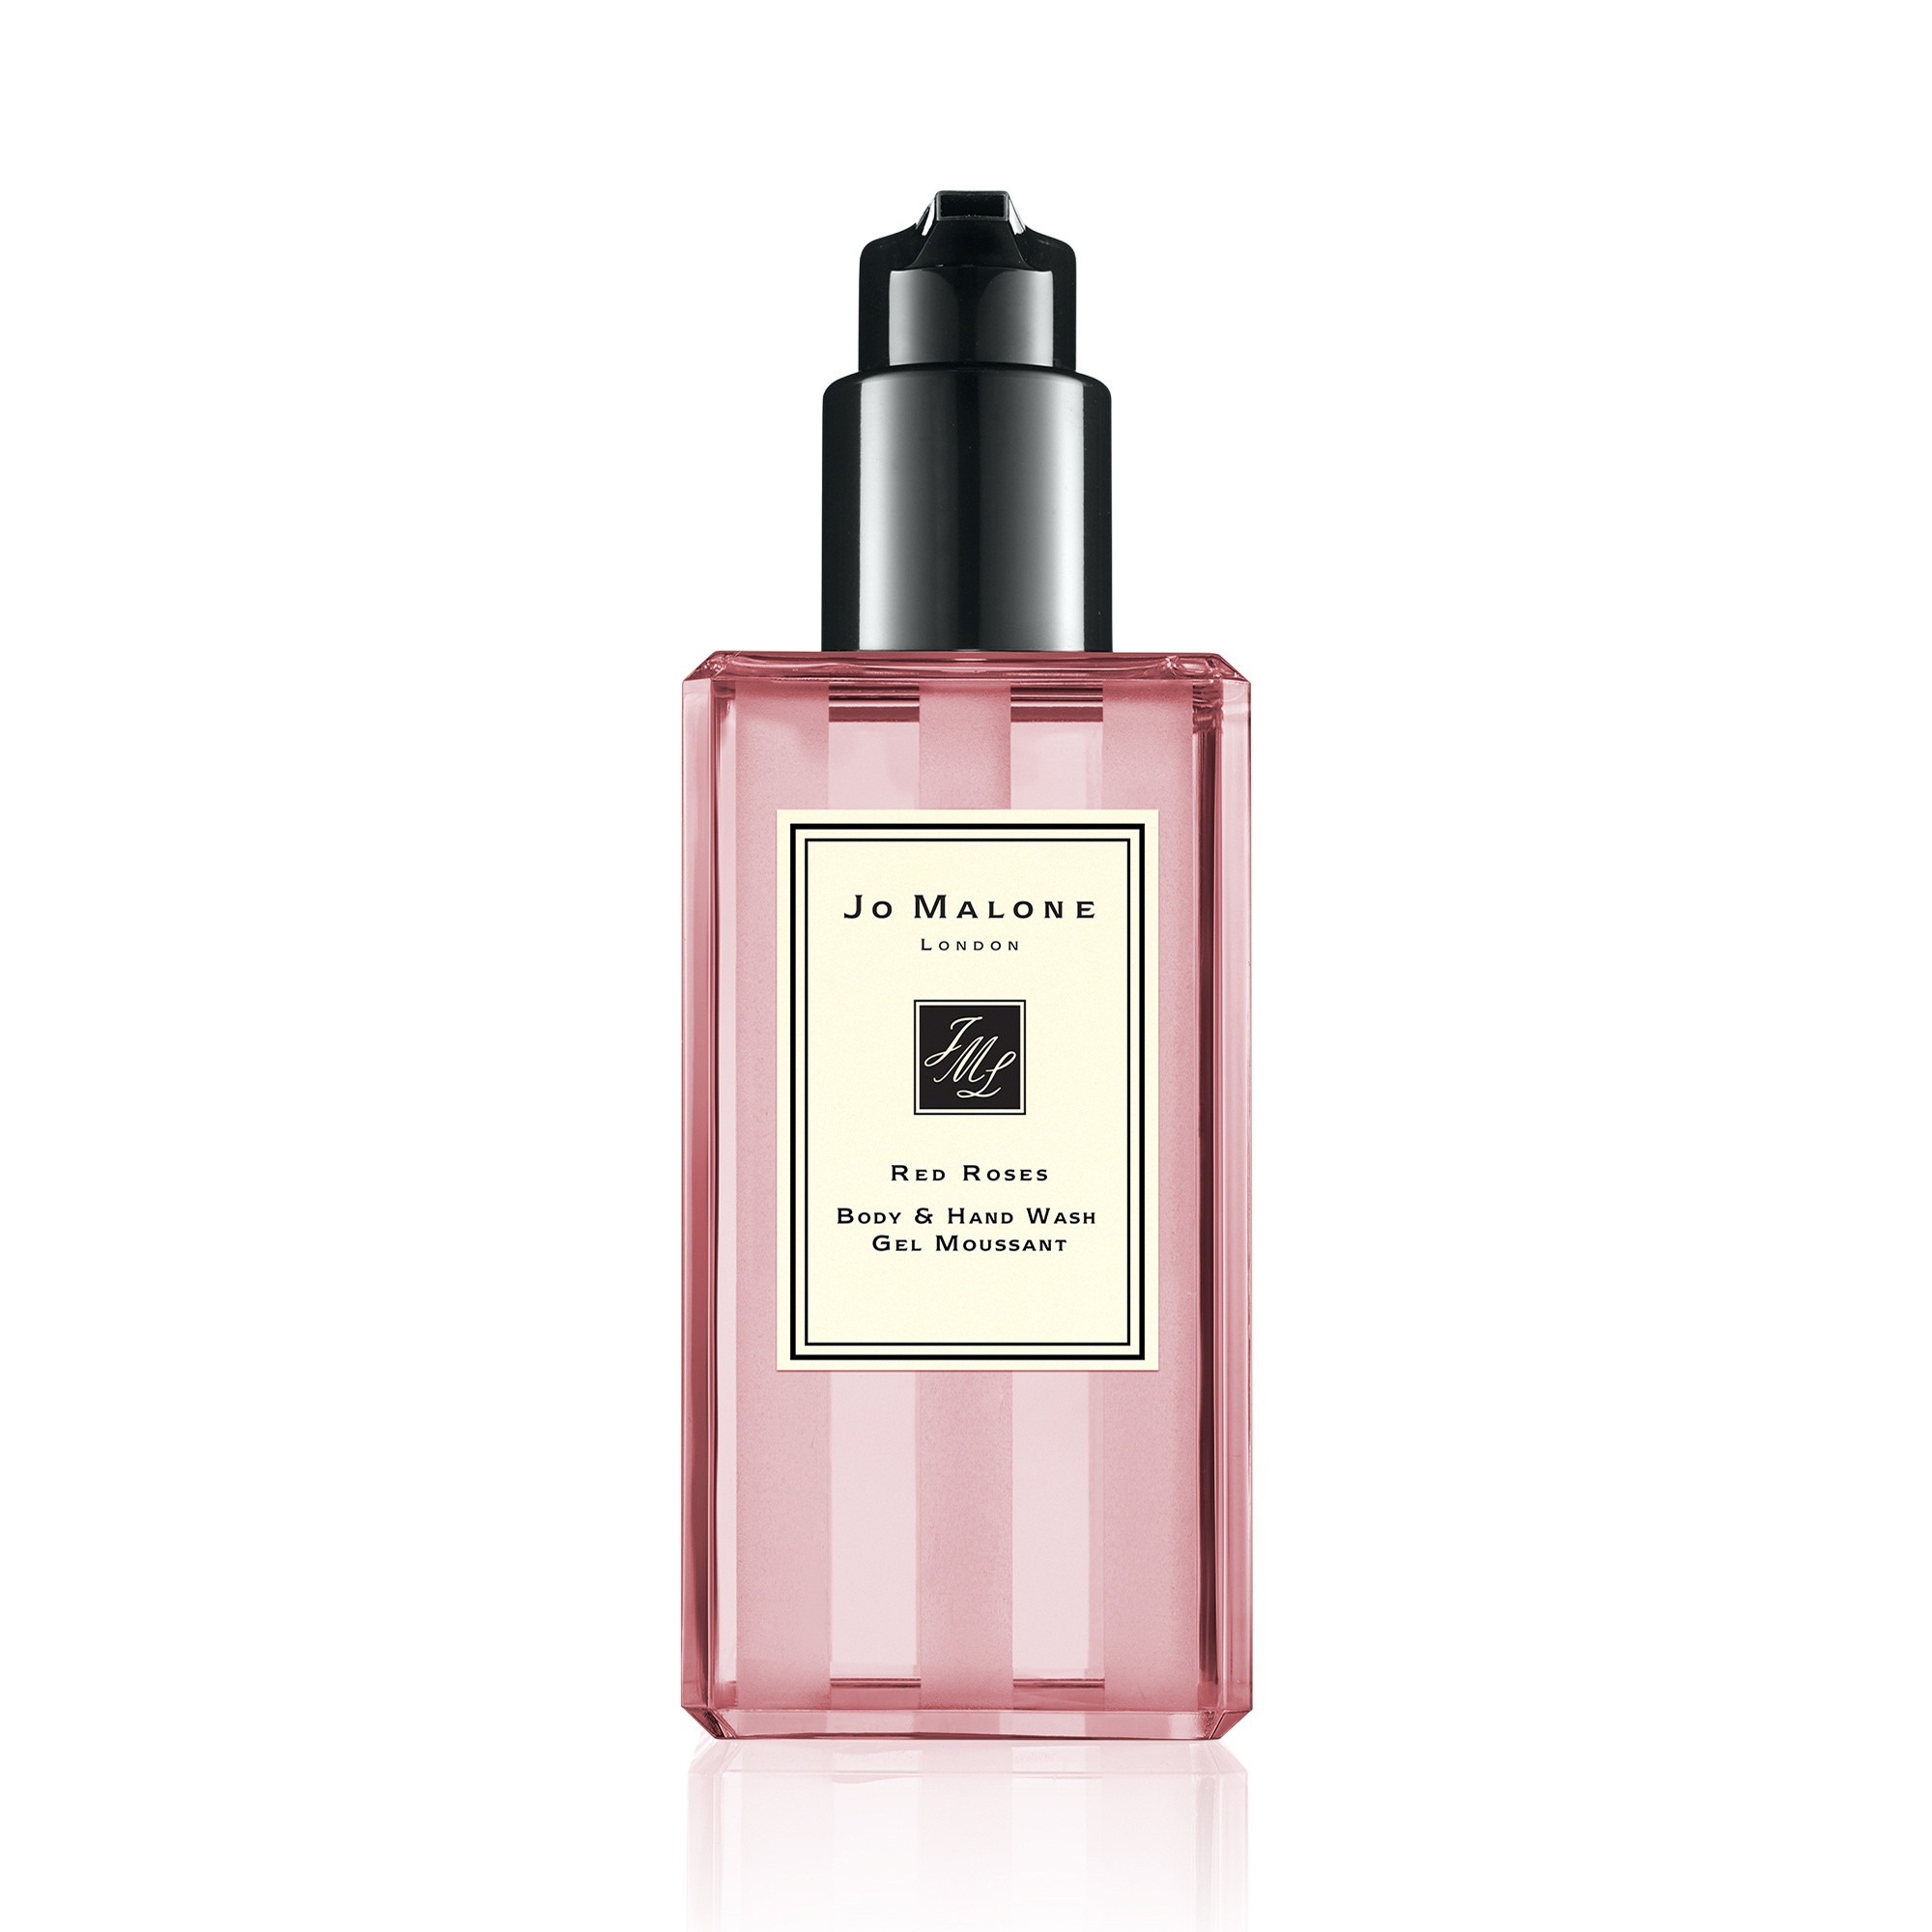 Jo Malone London red roses body & hand wash 250 ml, Beige, large image number 0